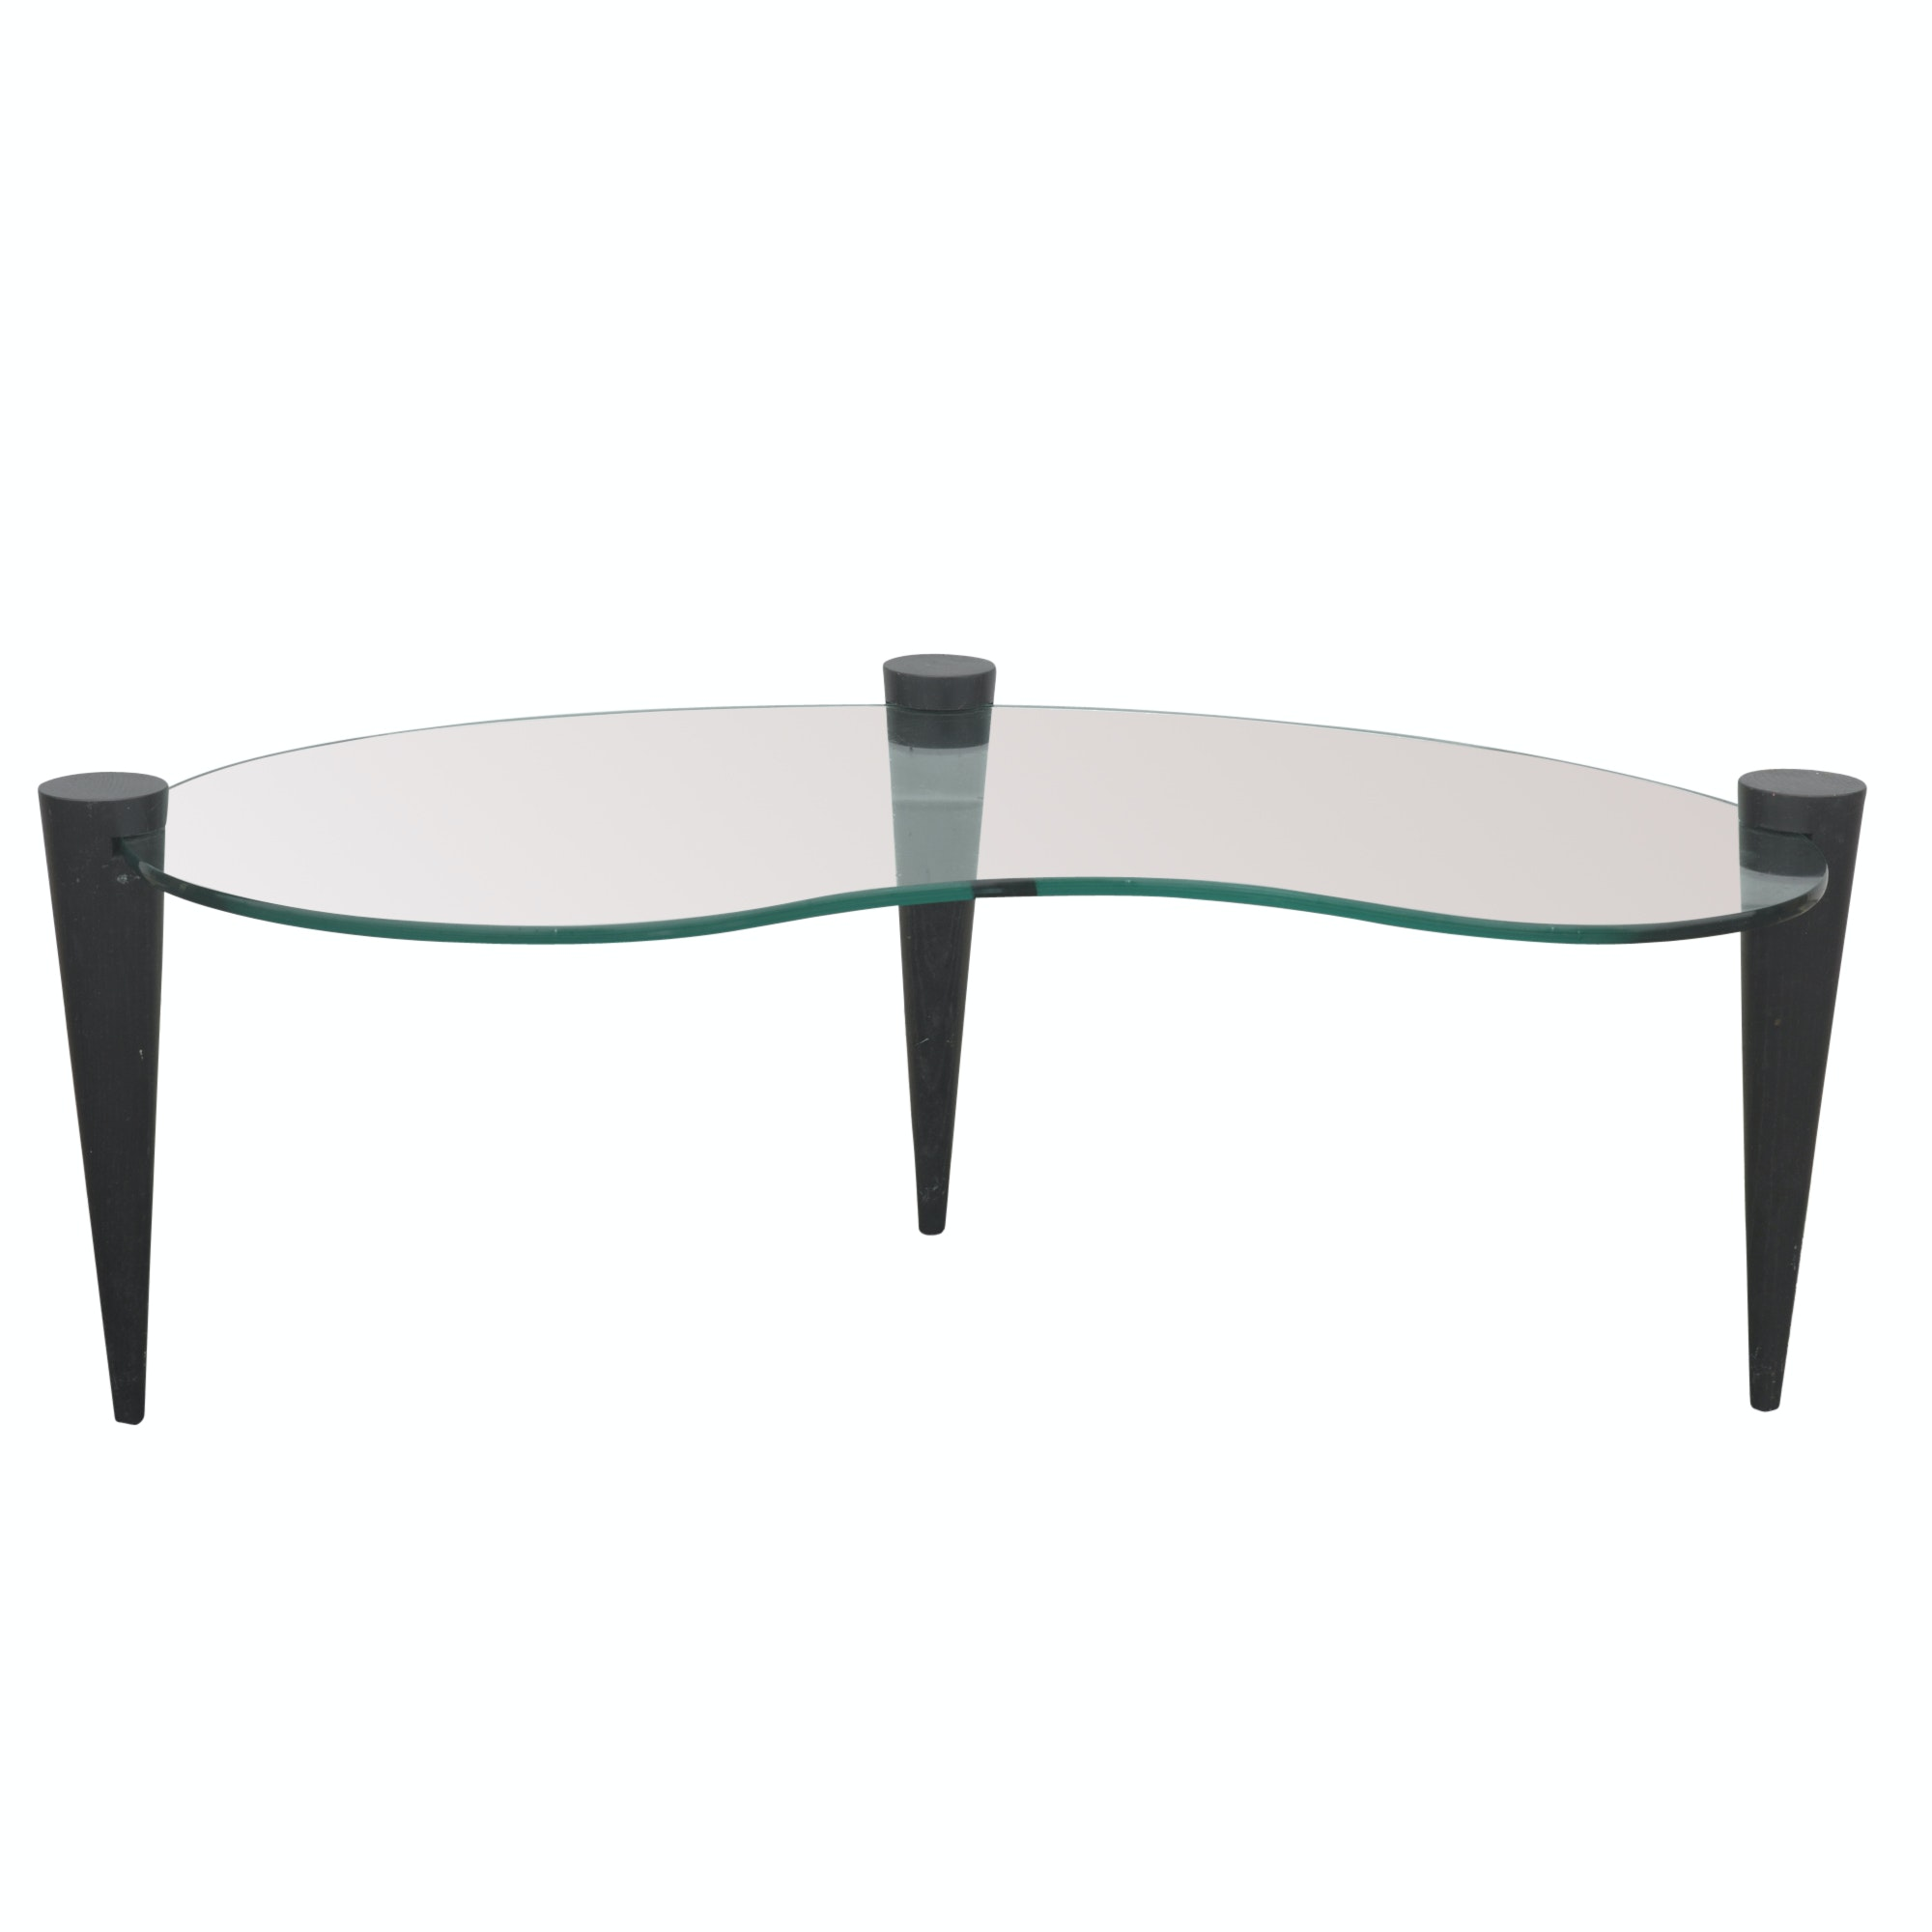 Kidney Bean Shaped Glass Coffee Table